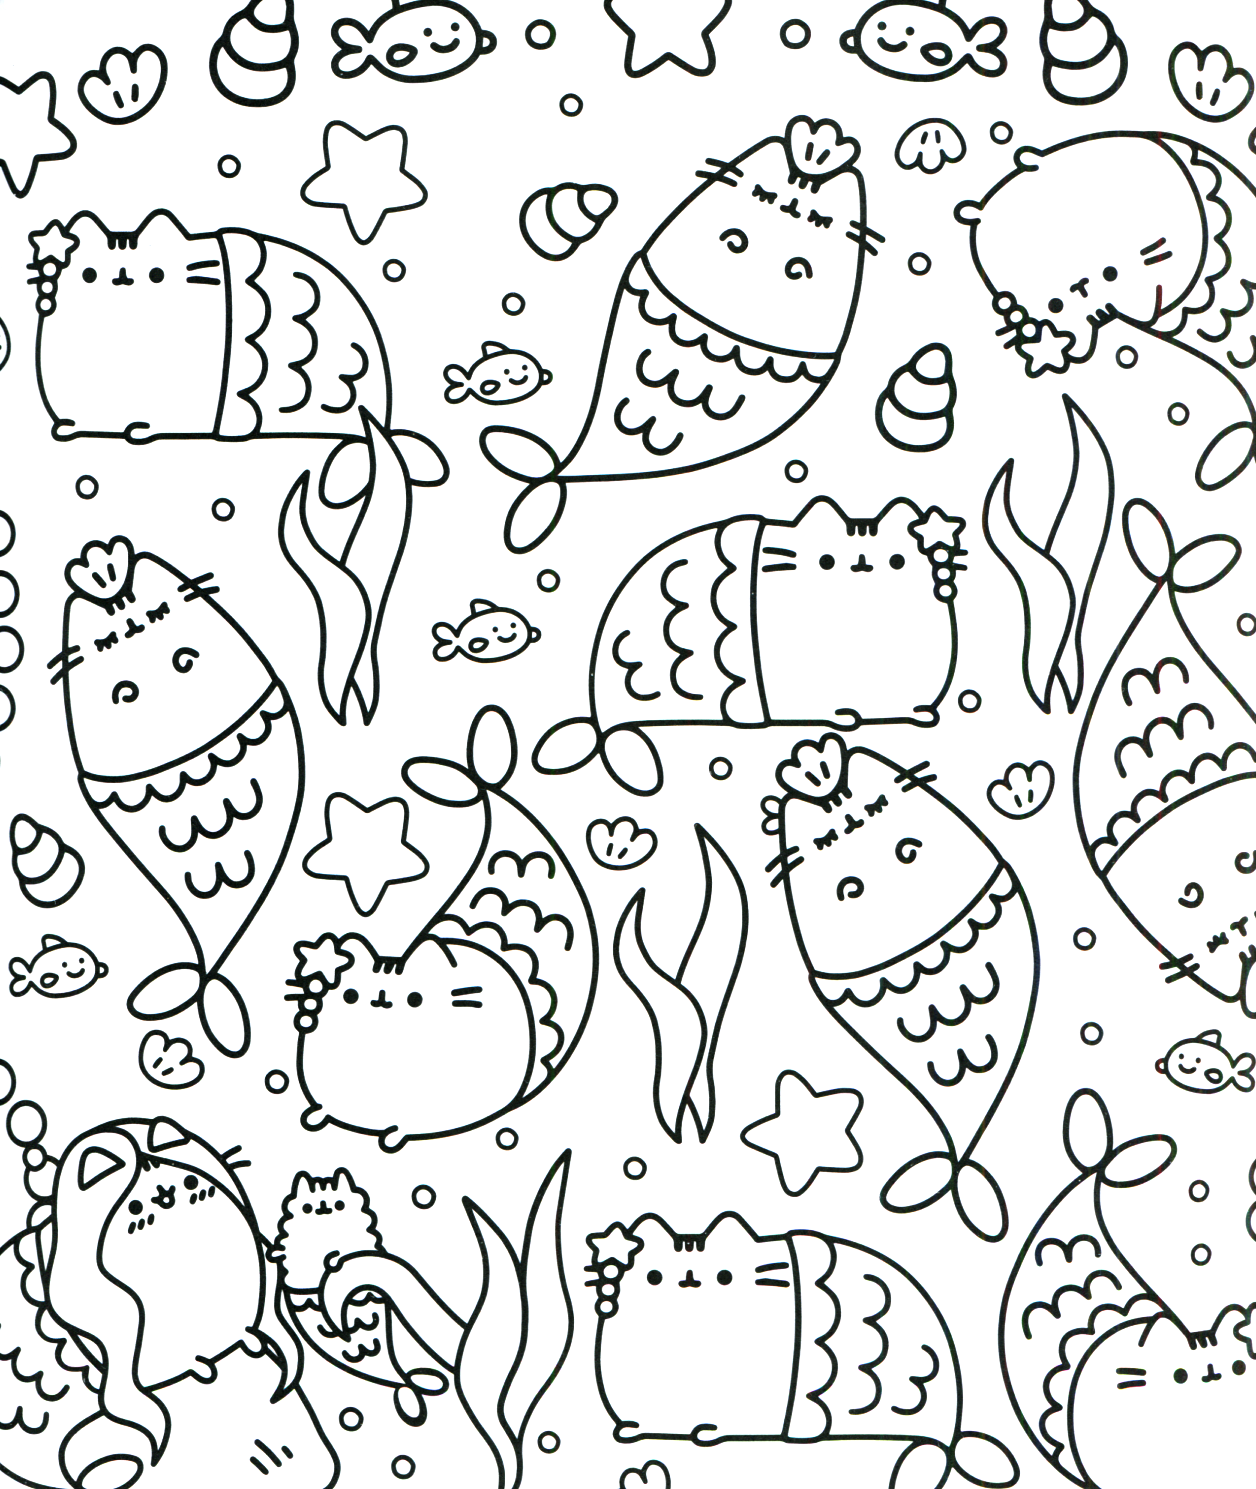 Pusheen coloring pages coloring pages Coloring book templates